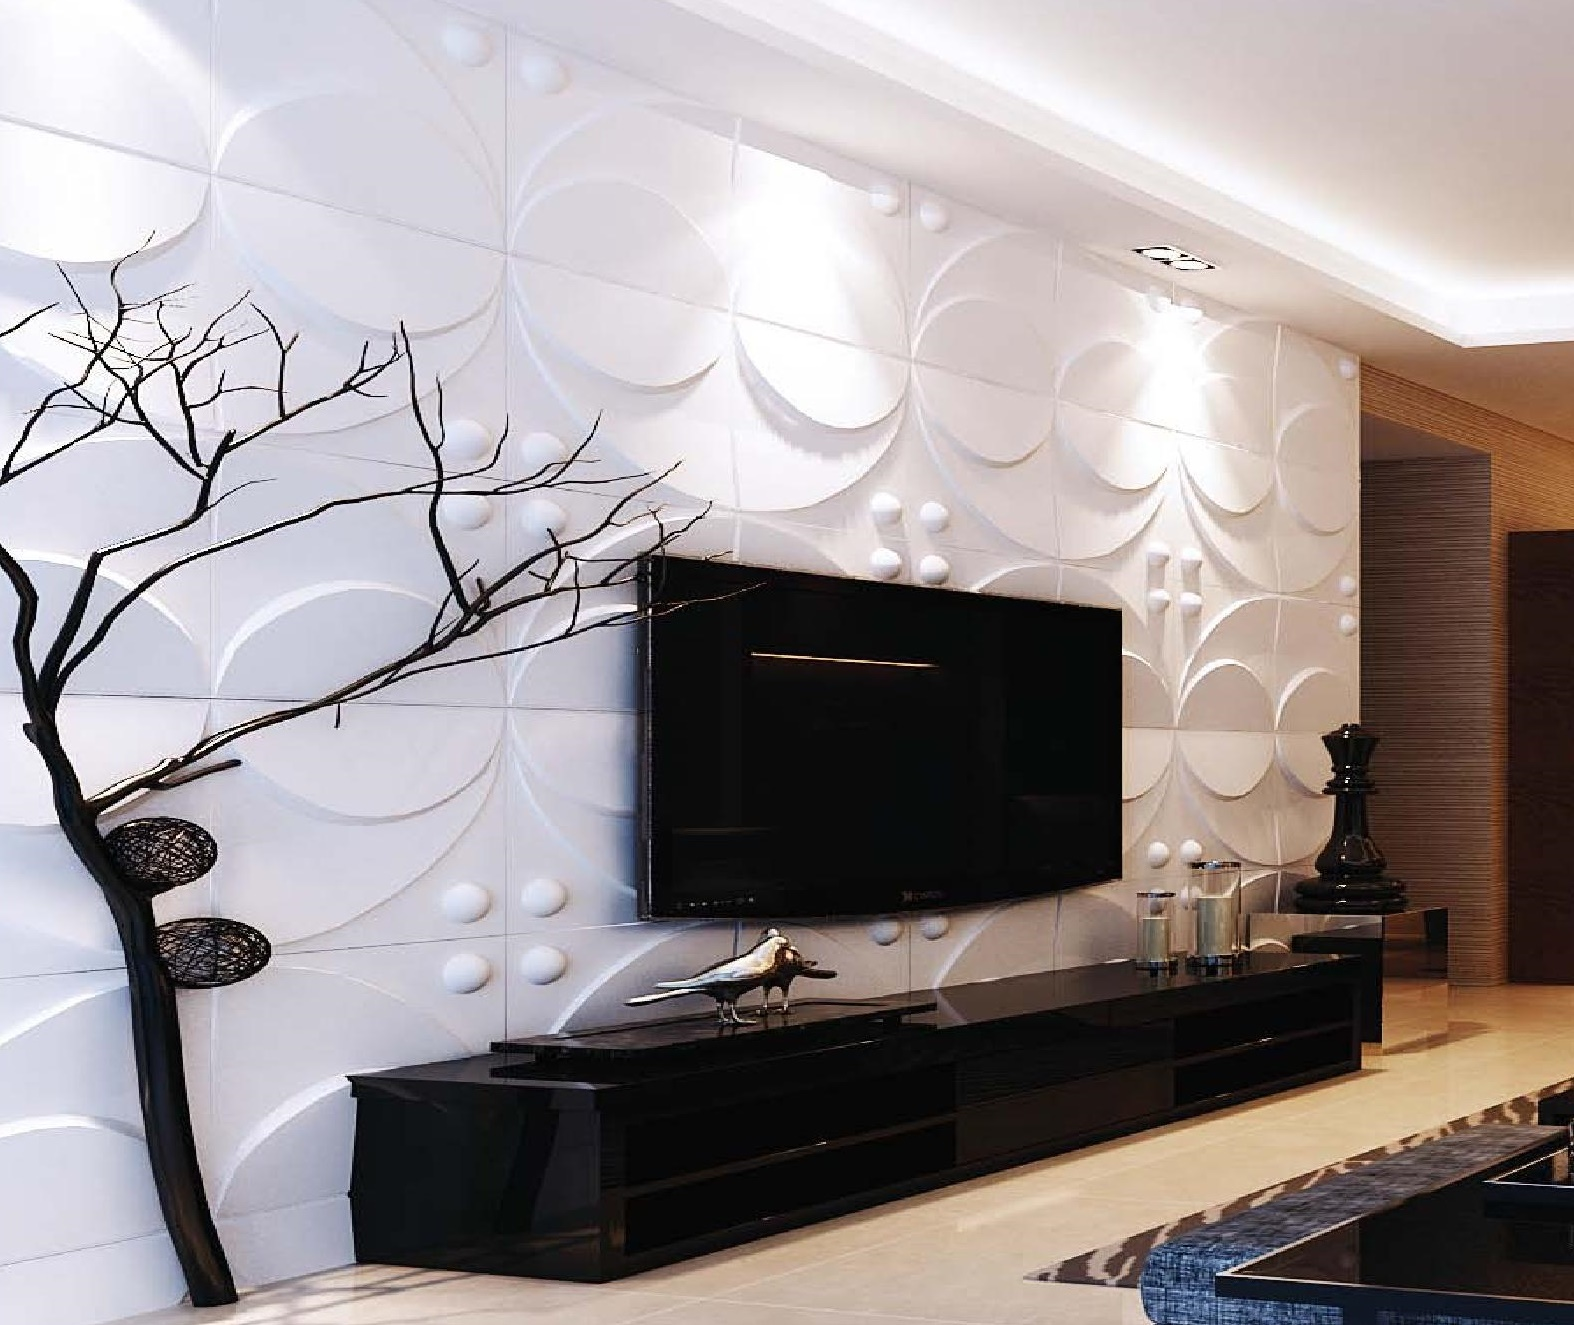 3D WINDMILL Wall Panels Blog Archive Affordable Home